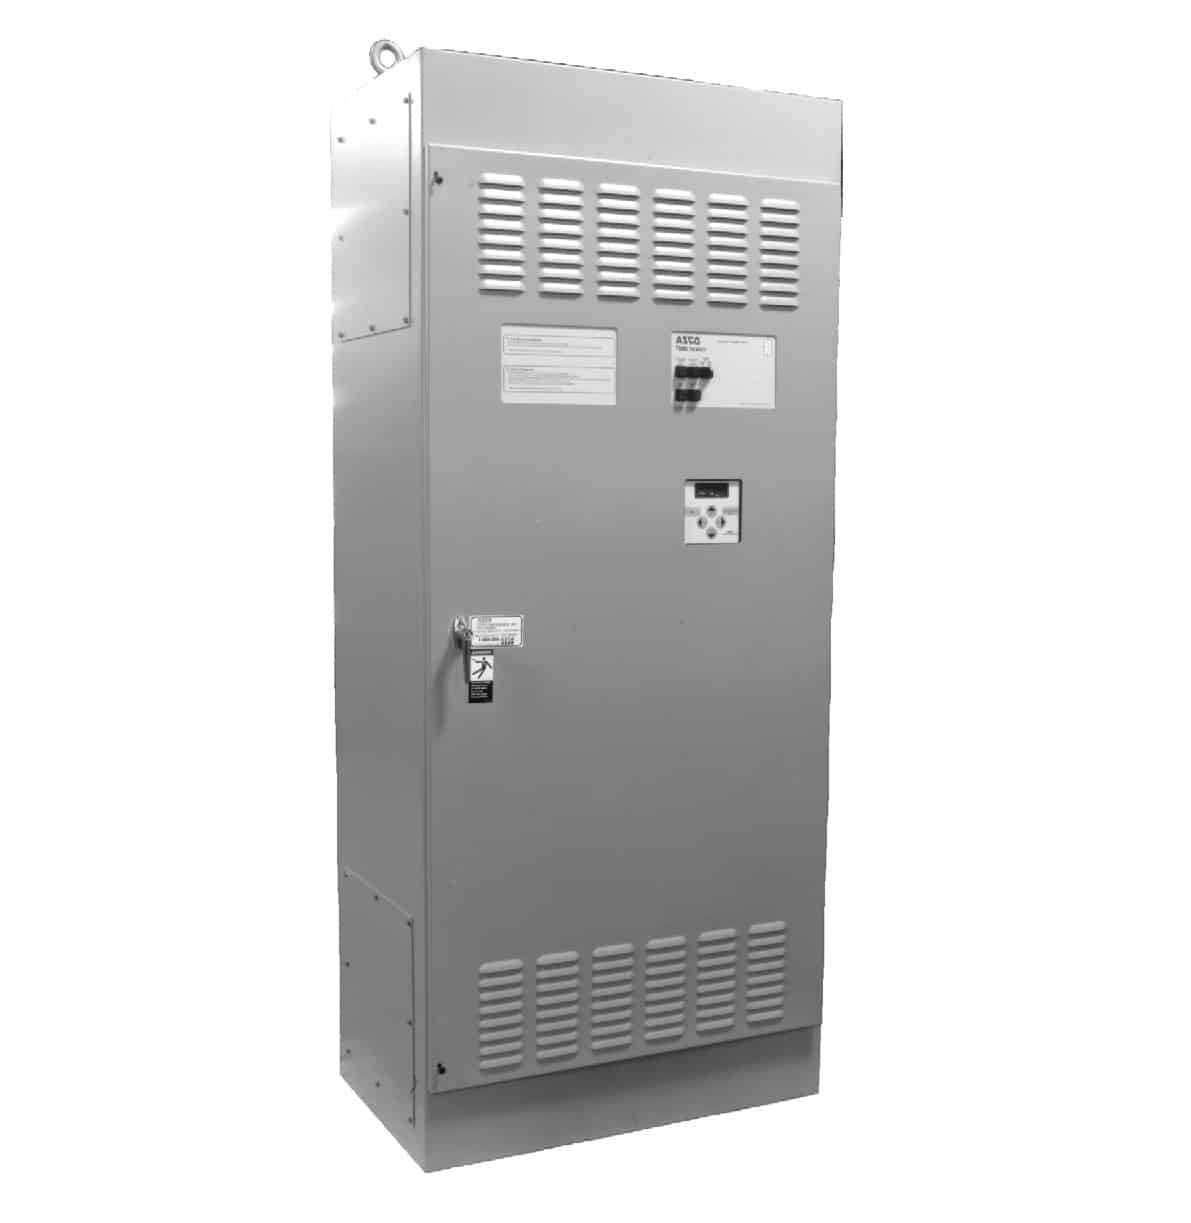 ASCO 7000 Series 1200 Amp Automatic Transfer Switch